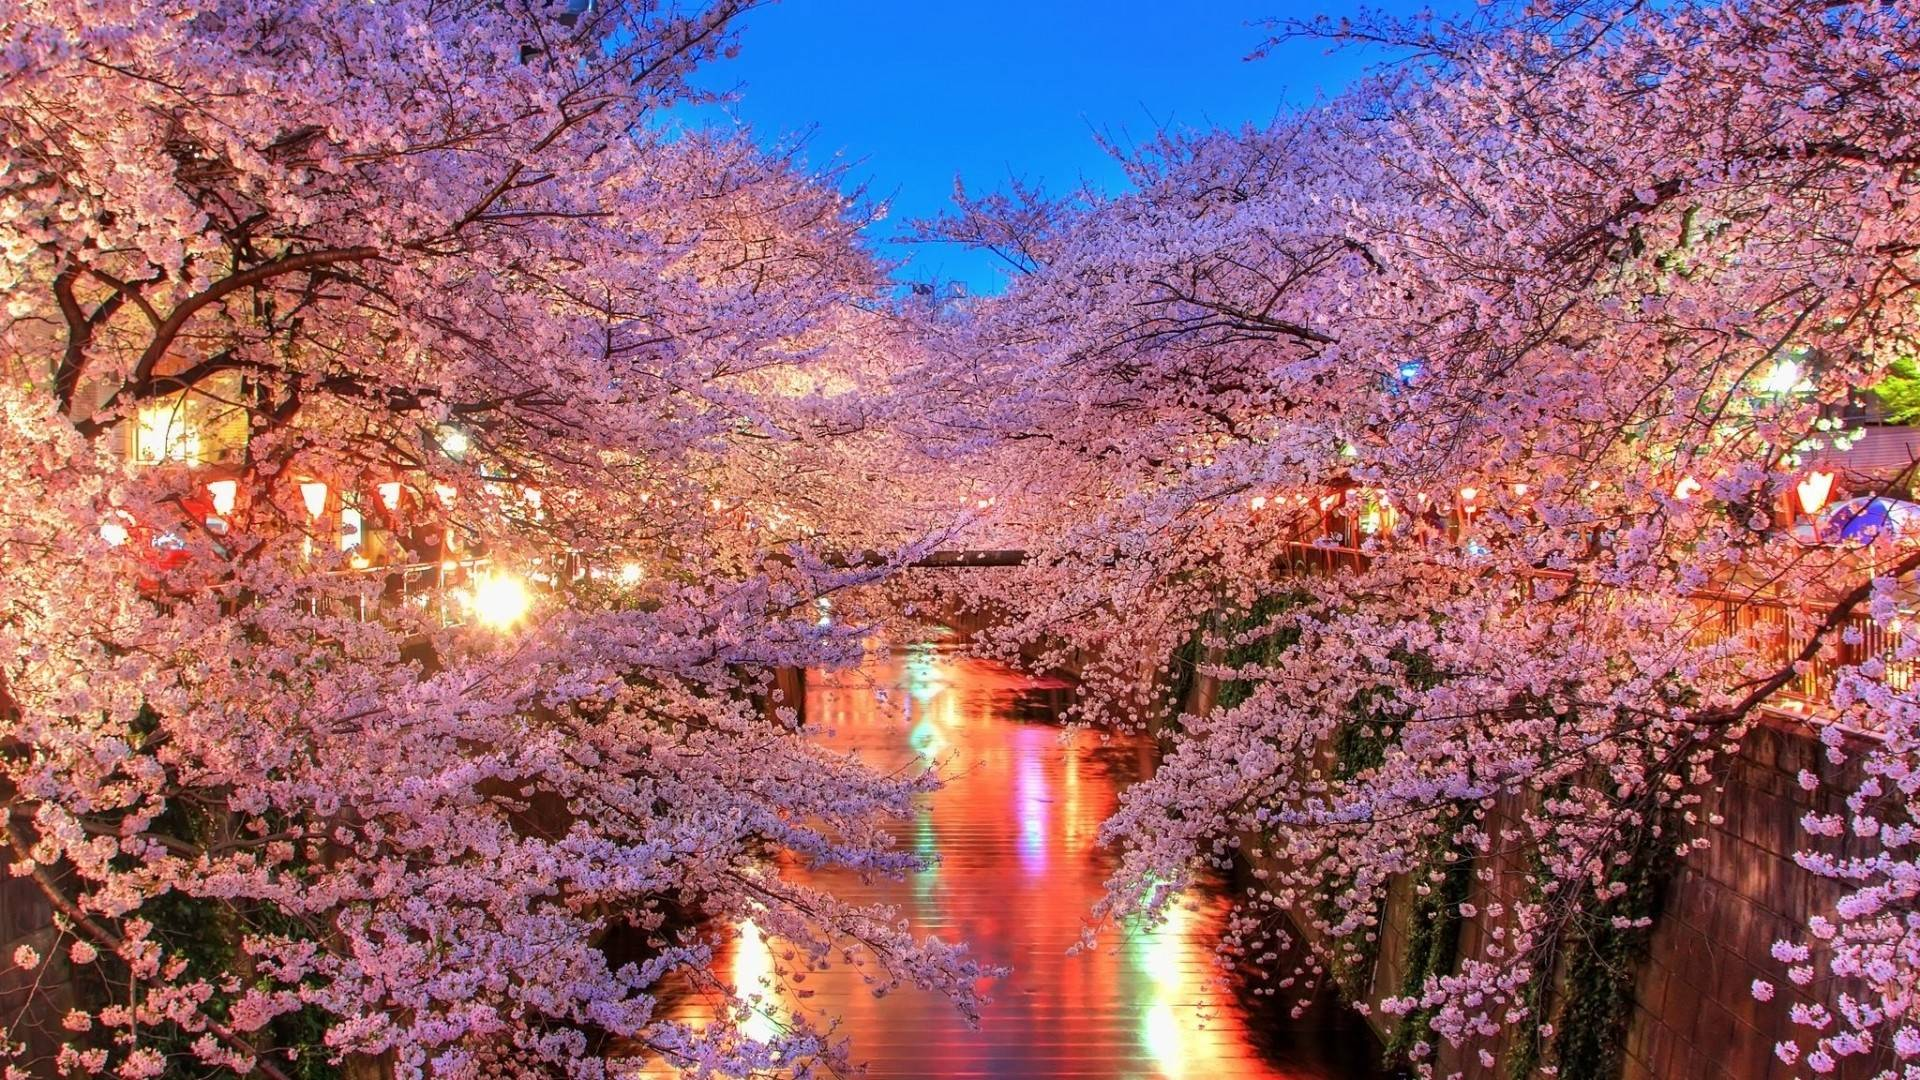 Most Beautiful Cherry Blossom Wallpapers for Free Download 1920x1080